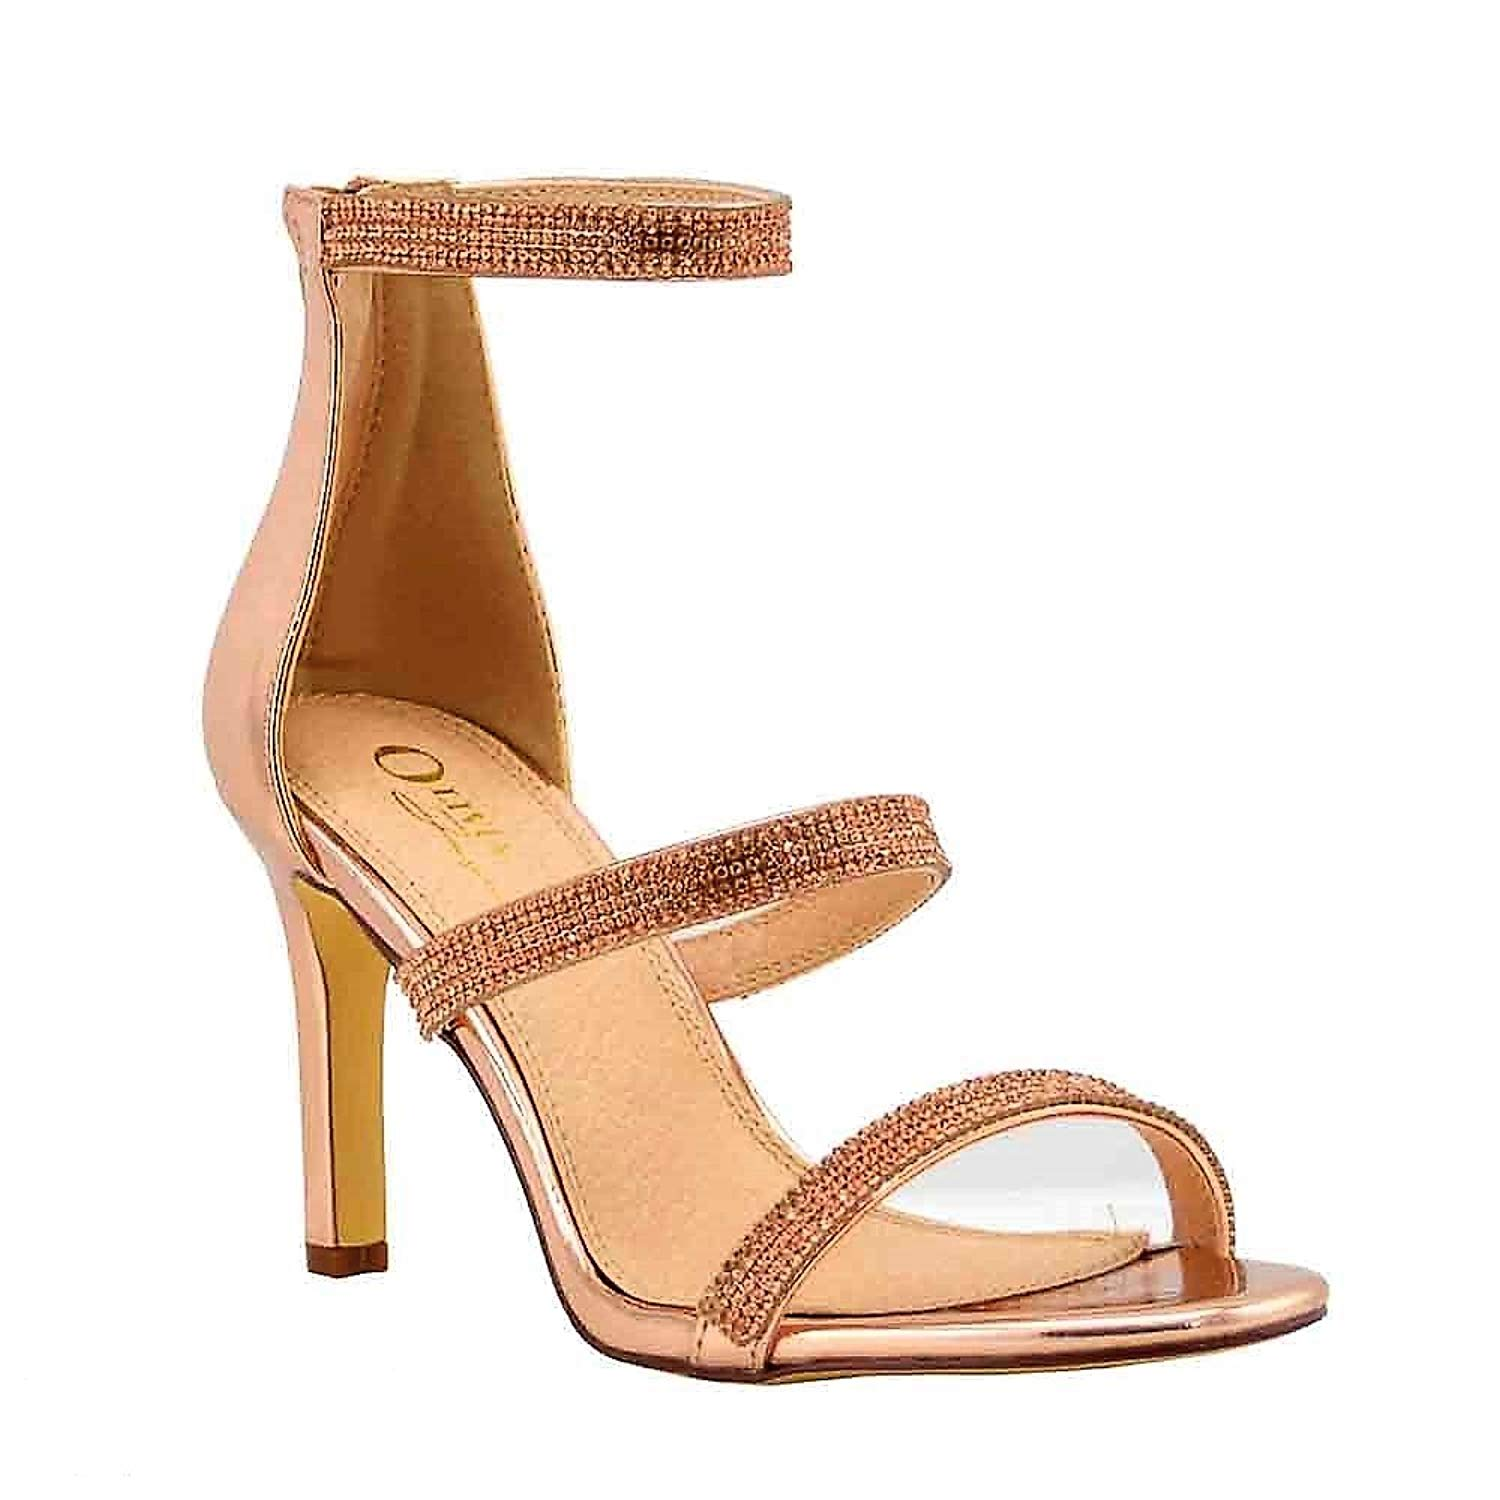 Olivia Jaymes Women's Casual Dress Sandal | Round Open Toe Rhinestone Covered Triple Band | Mid Kitten Heel Sandals